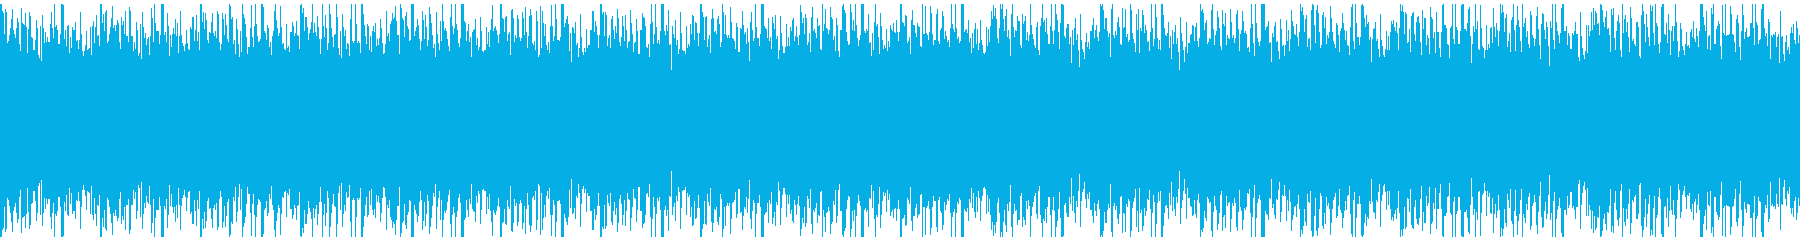 Refreshing and bright acoustic guitar / video video interview's reproduced waveform